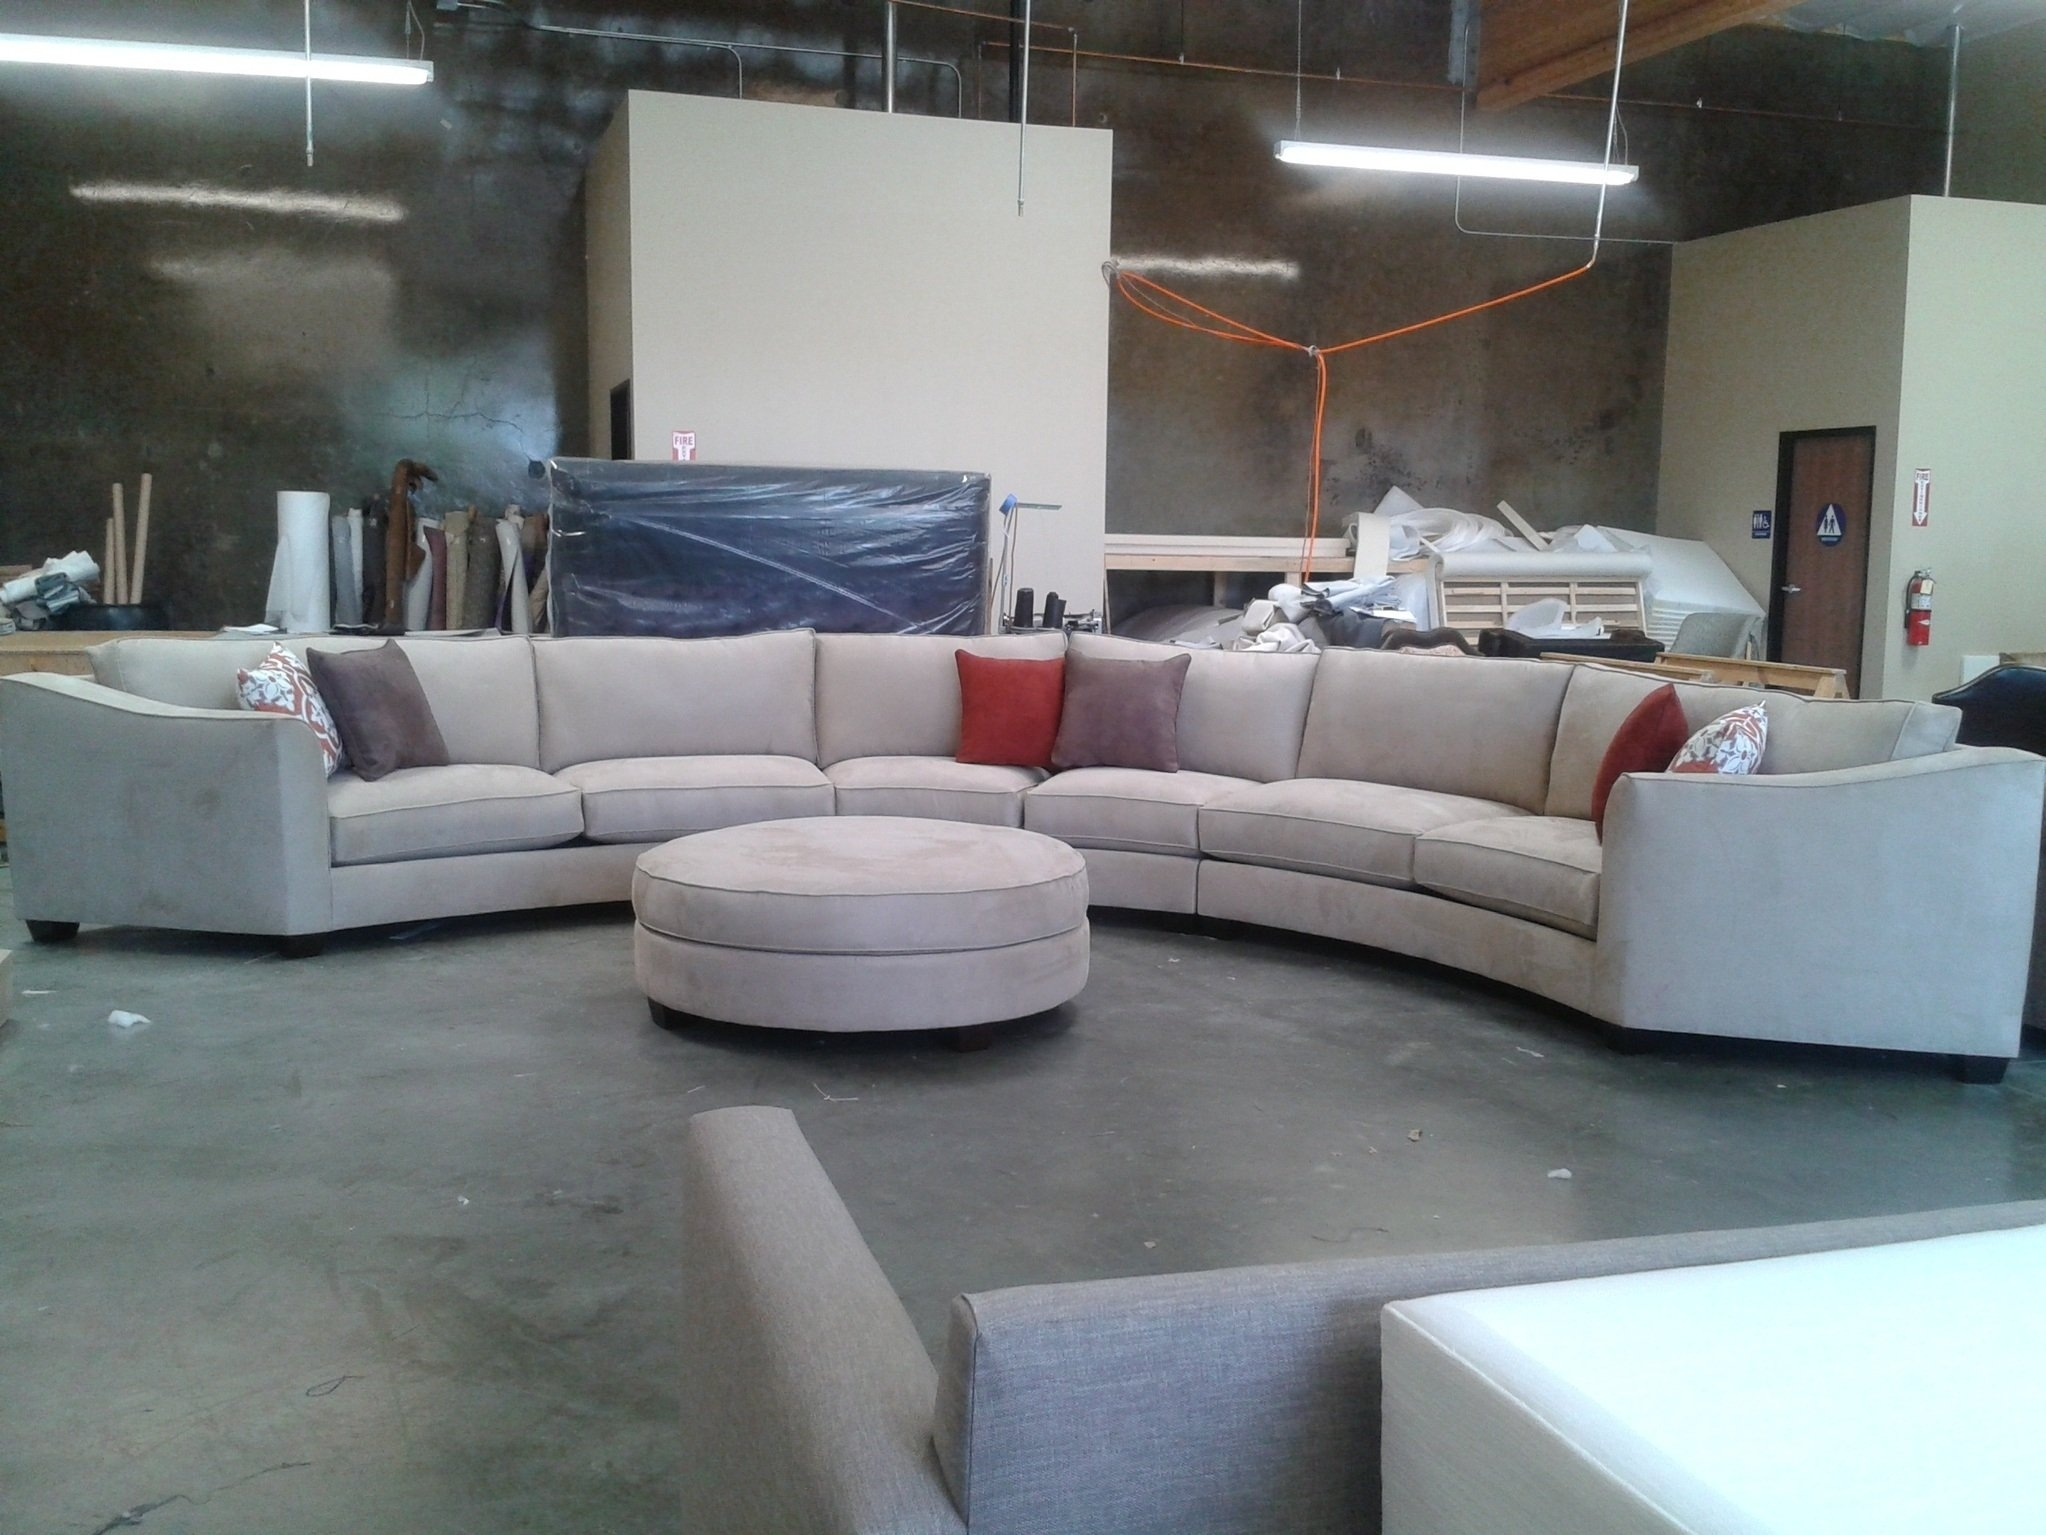 Curved Sectional Sofa Set Rich Comfortable Upholstered Fabric In with Circular Sectional Sofas (Image 3 of 10)